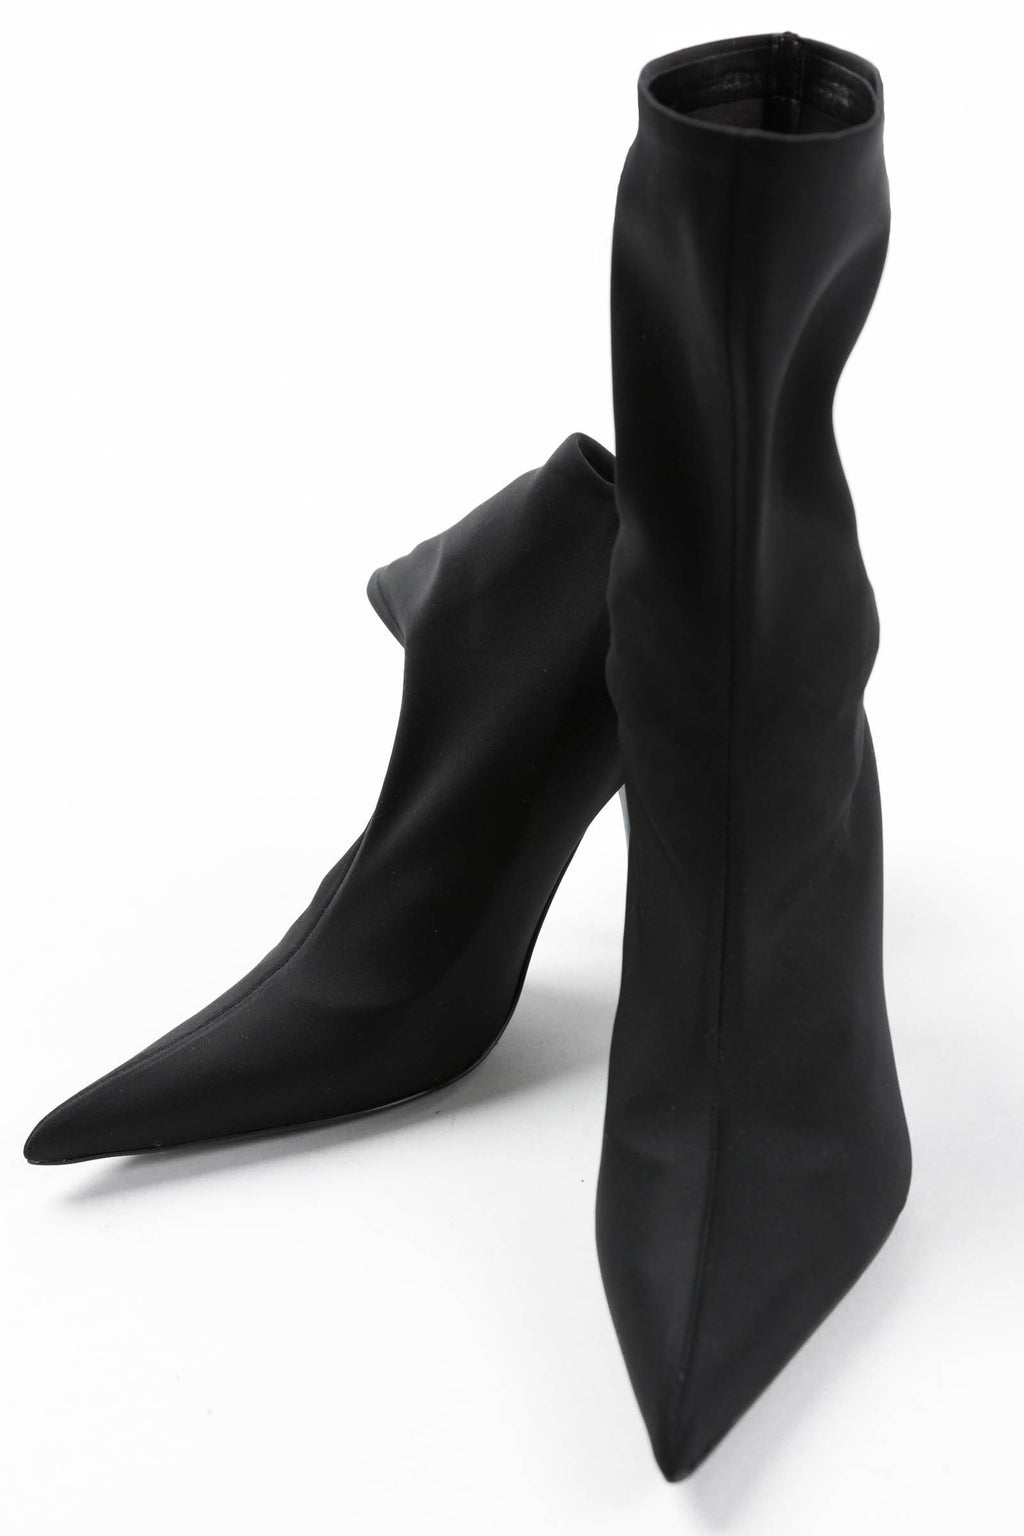 Venus Boots in SHOES by J.ING - an L.A based women's fashion line